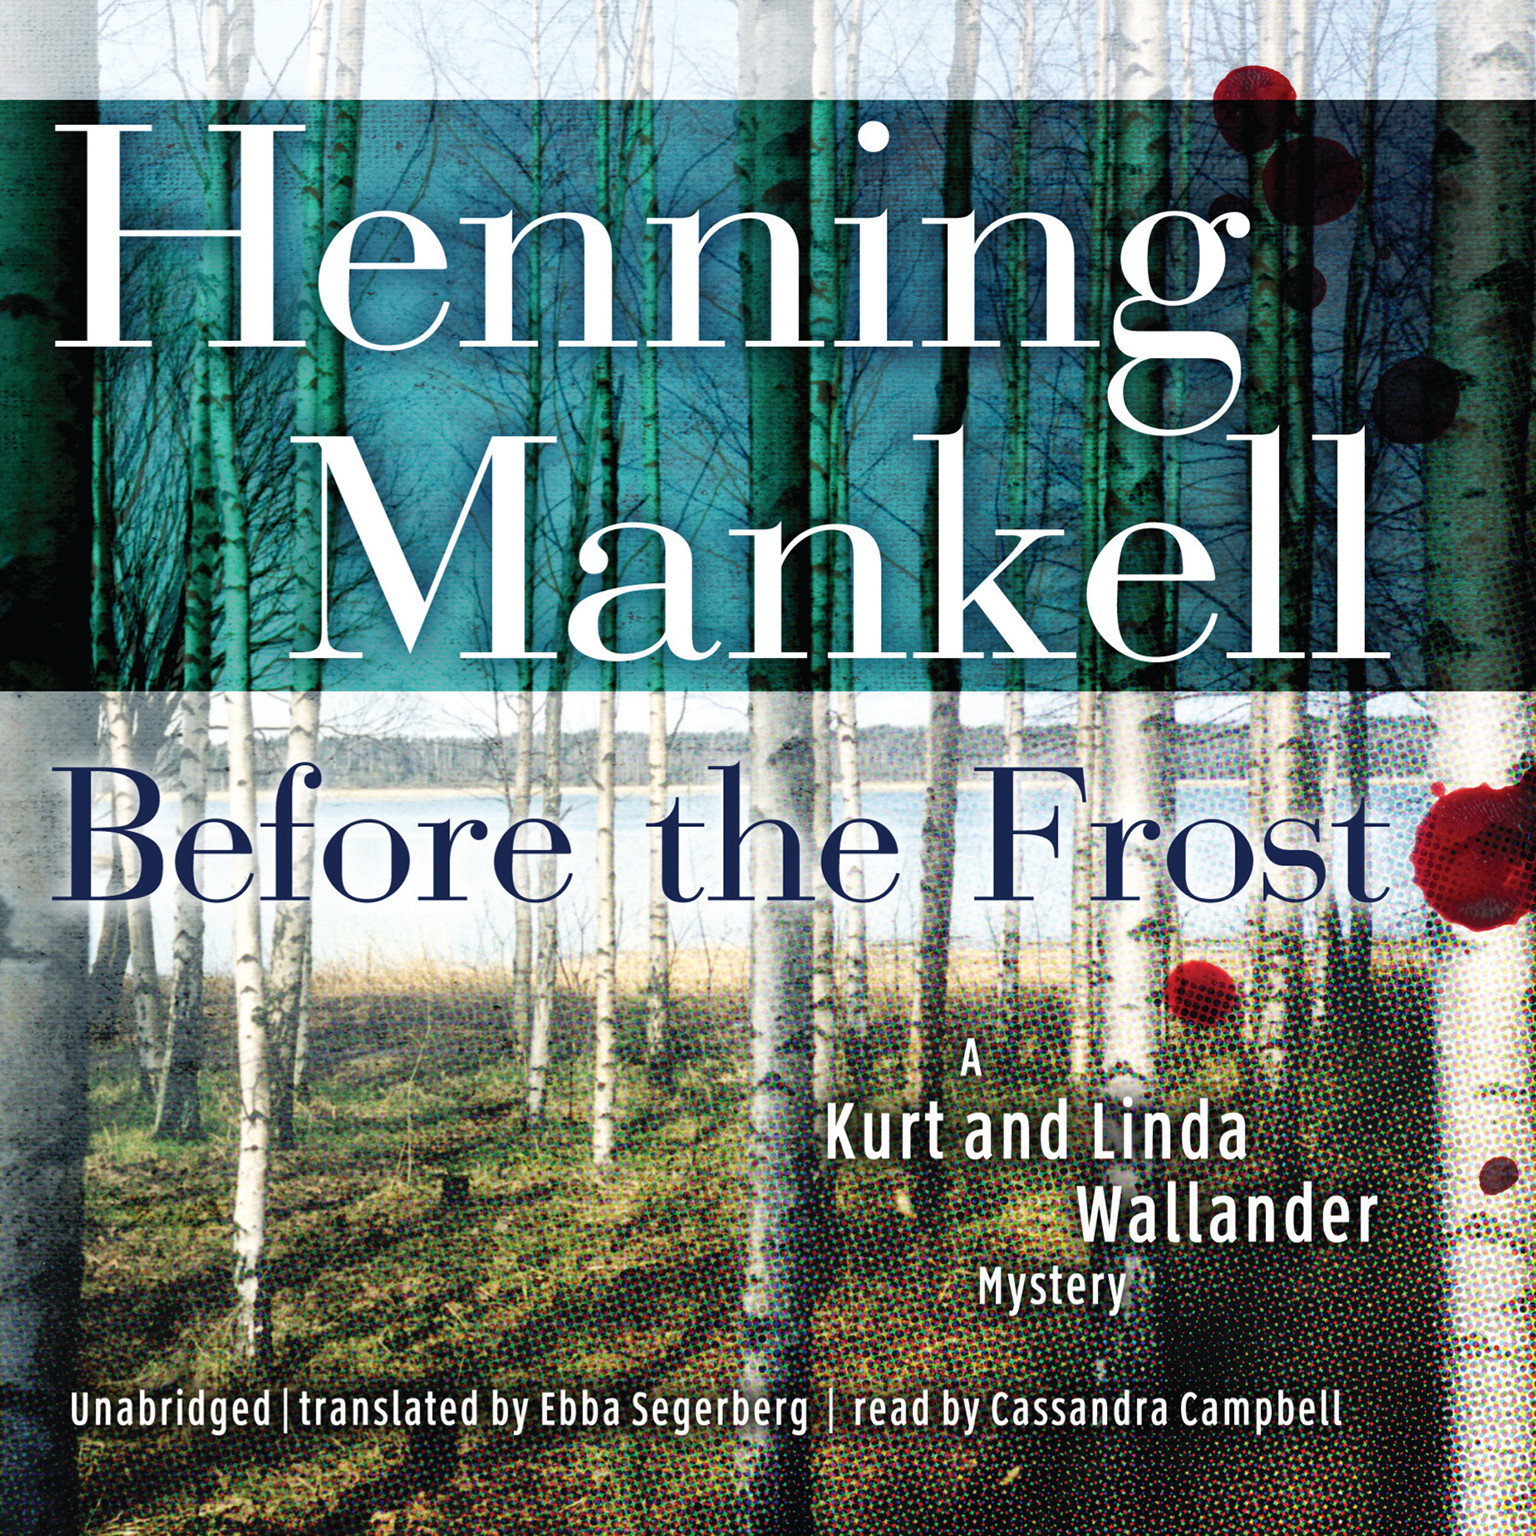 Printable Before the Frost: A Kurt and Linda Wallander Novel Audiobook Cover Art